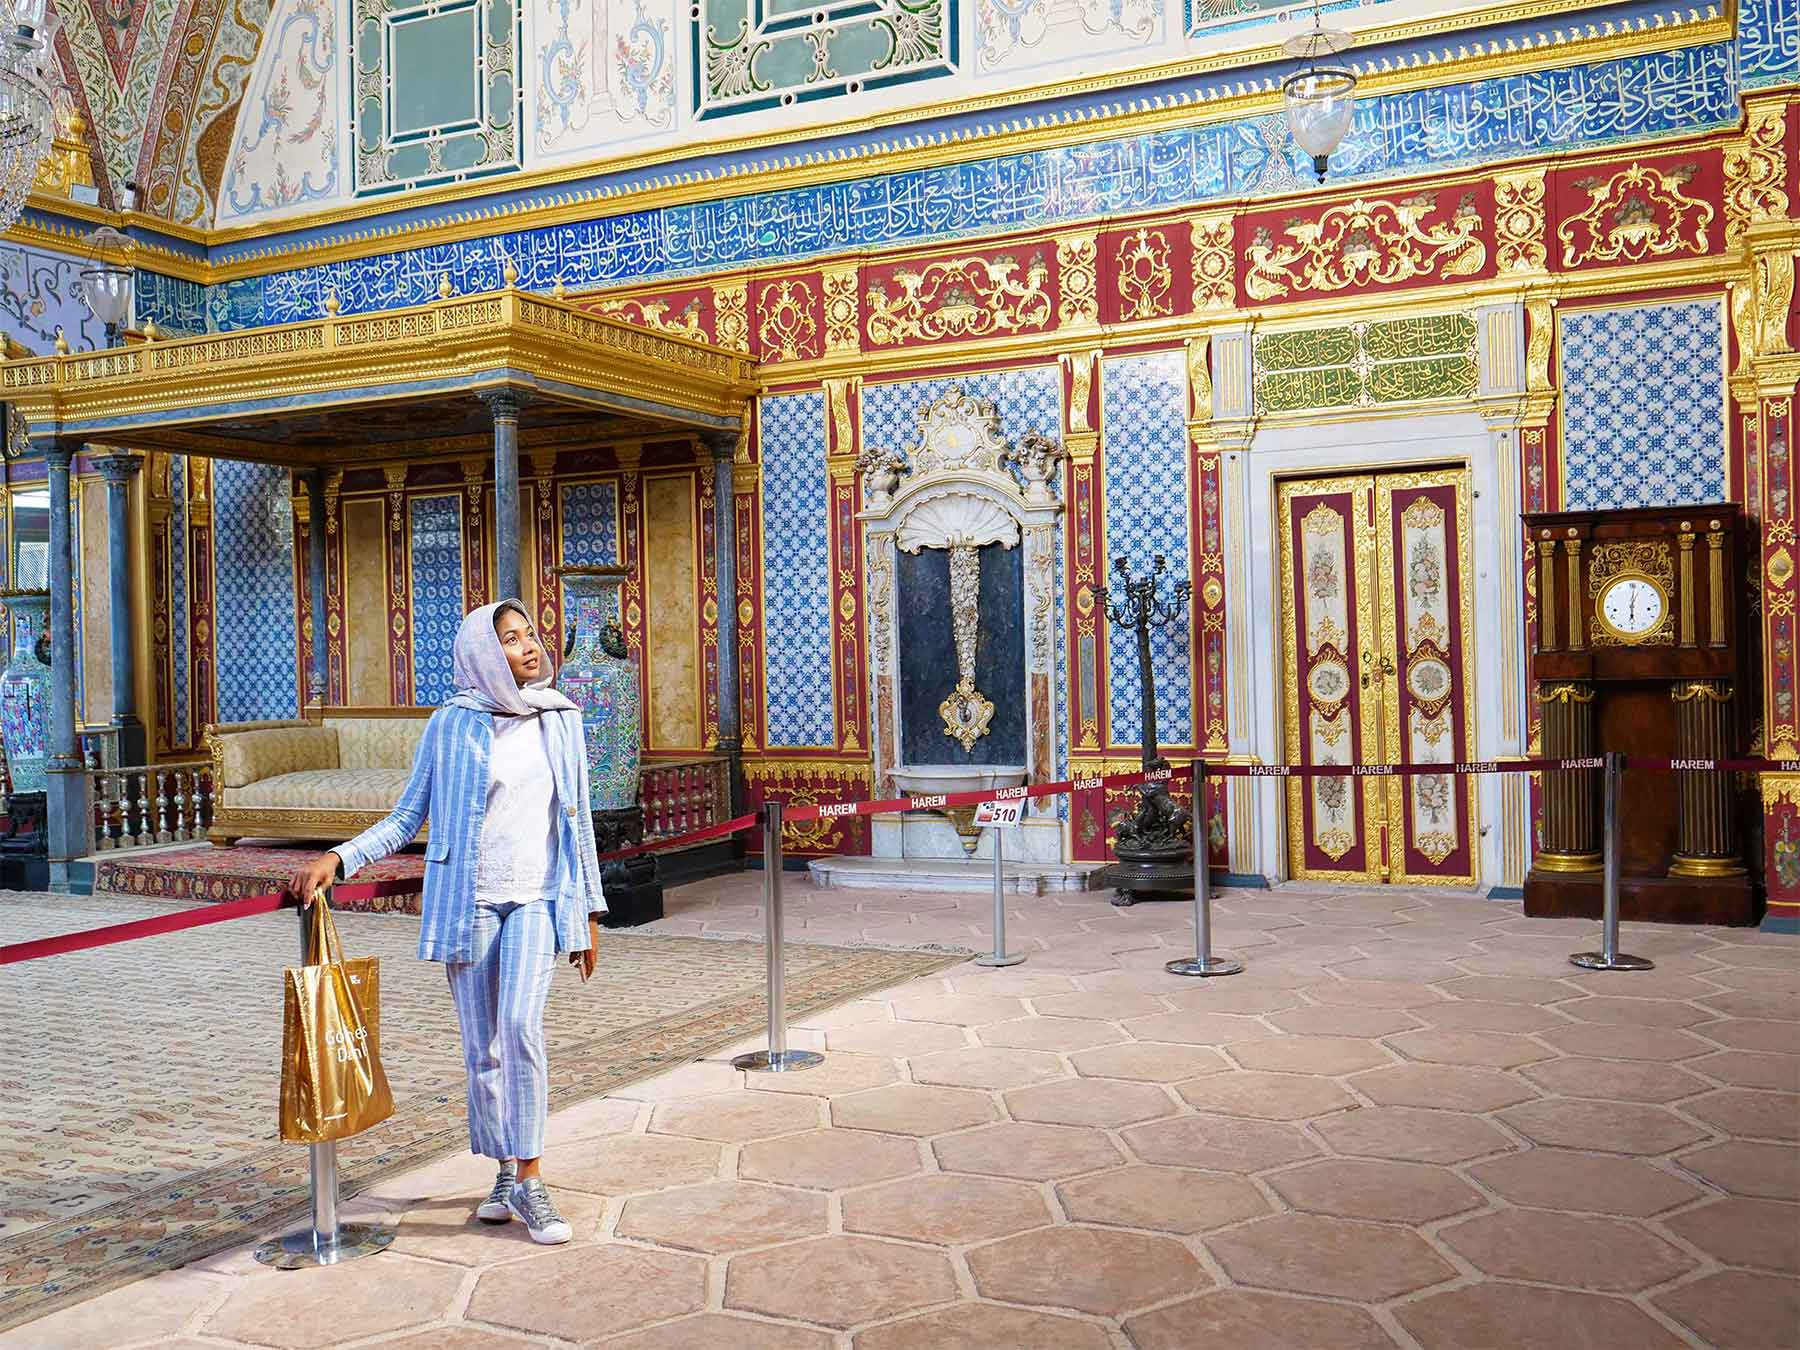 The Imperial Hall and Throne of the Sultan | Topkapi Palace | Istanbul Turkey | Photo Dr Steven A Martin 2019 | Learning Adventures